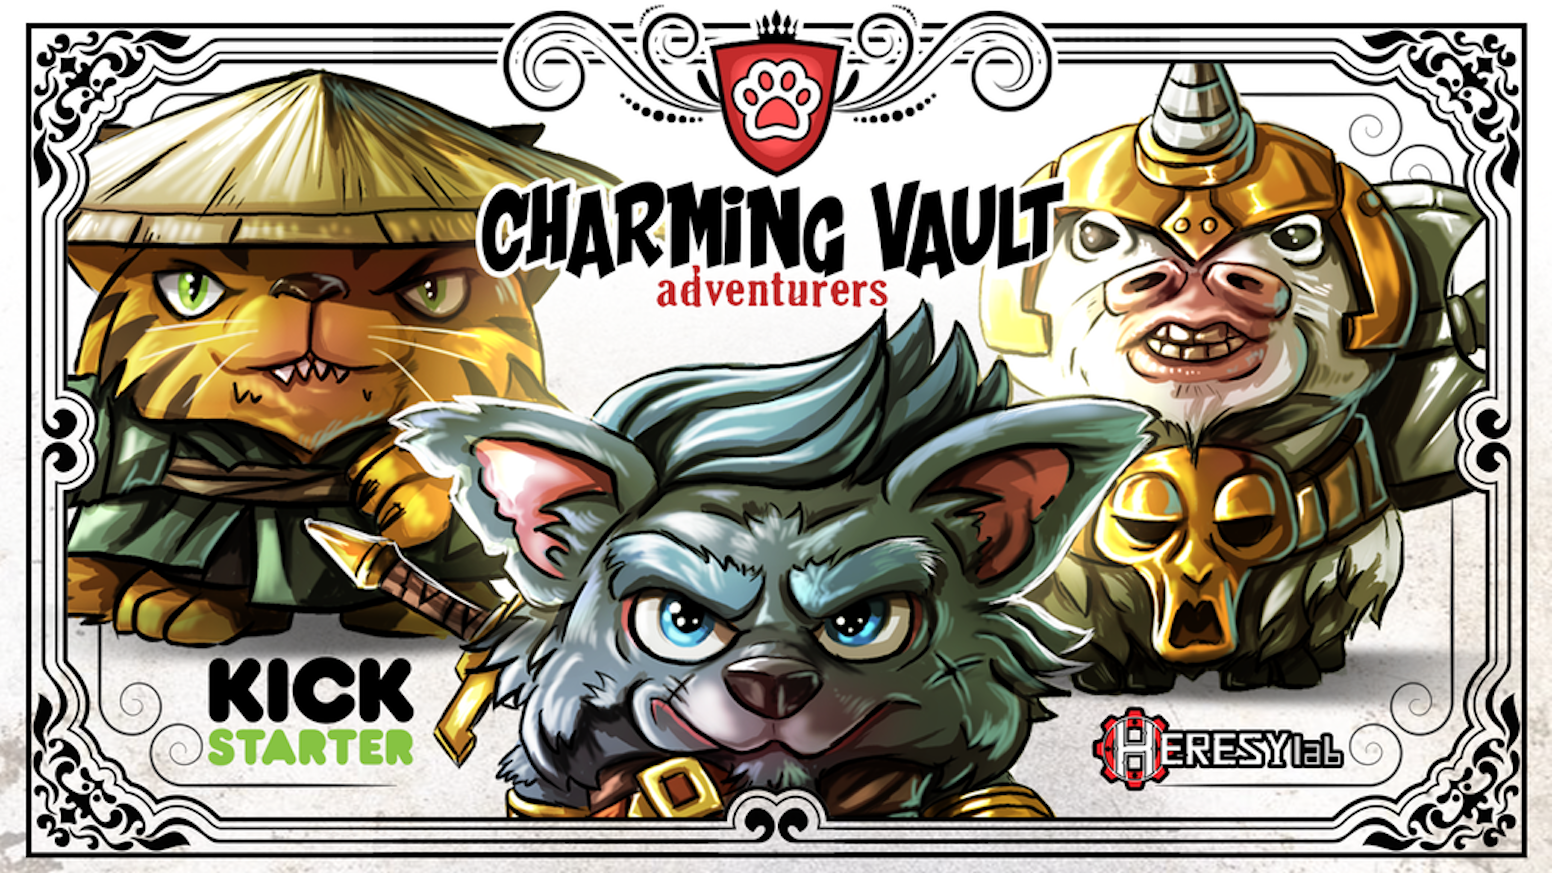 Charming Vault STL printable files for D&D inspired animal adventurers.